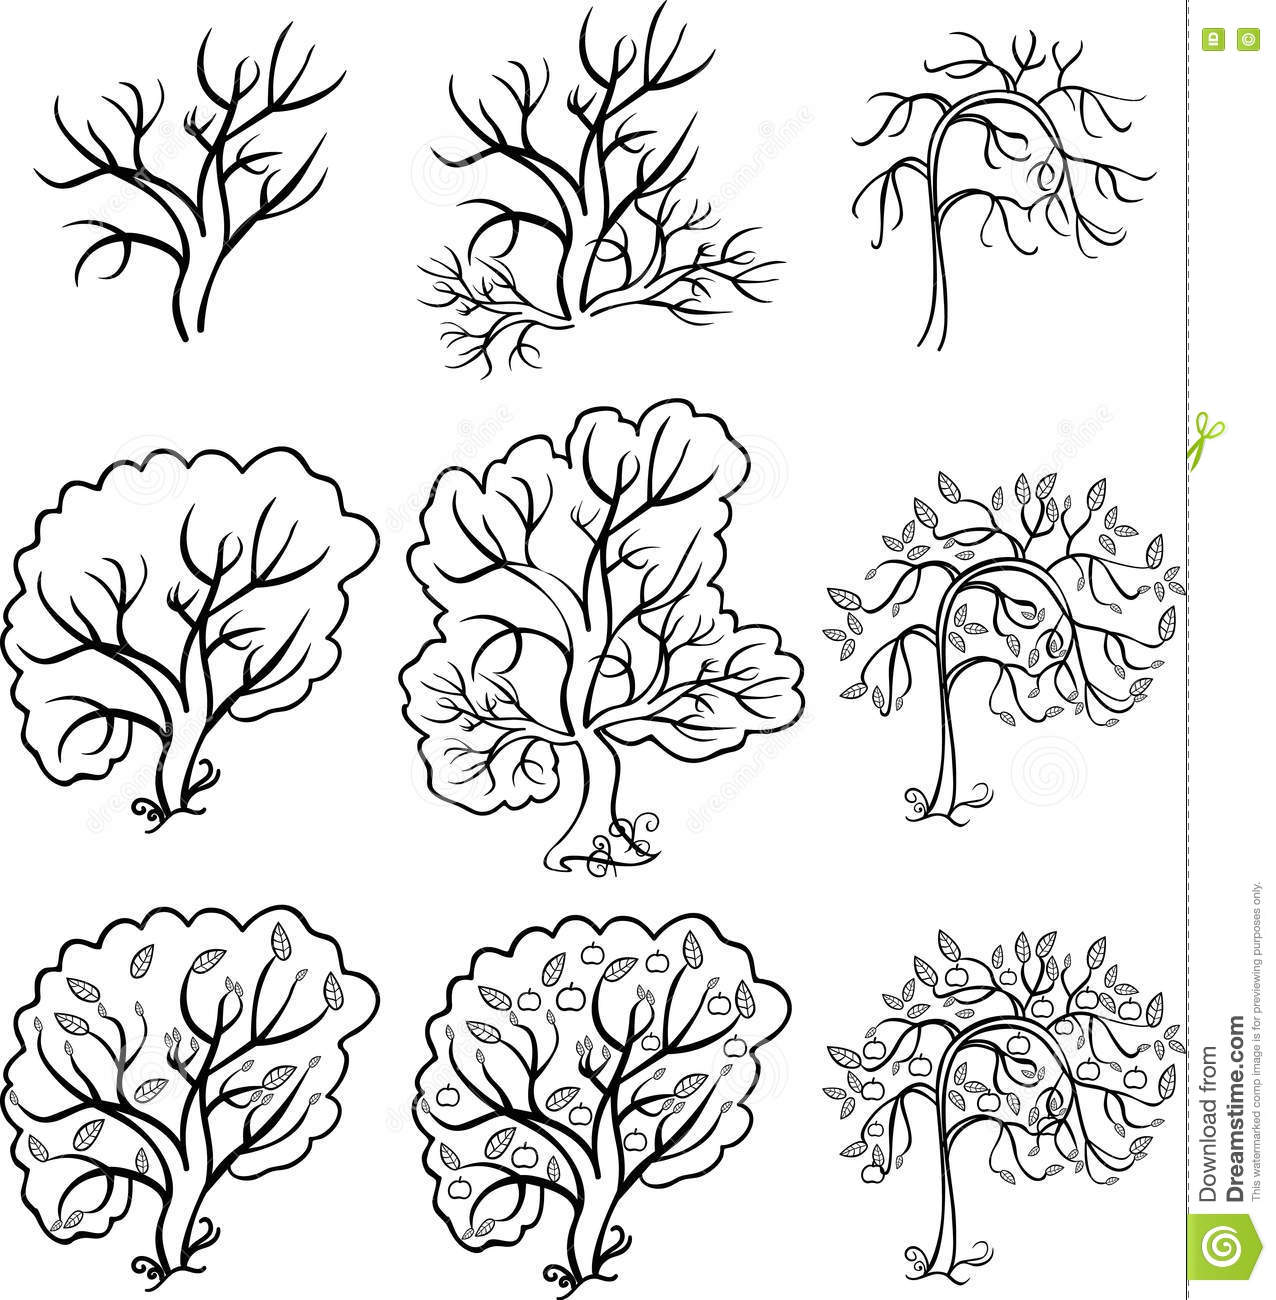 Coloring Bush And Trees An Apple Tree Vector Illustration Stock Vector